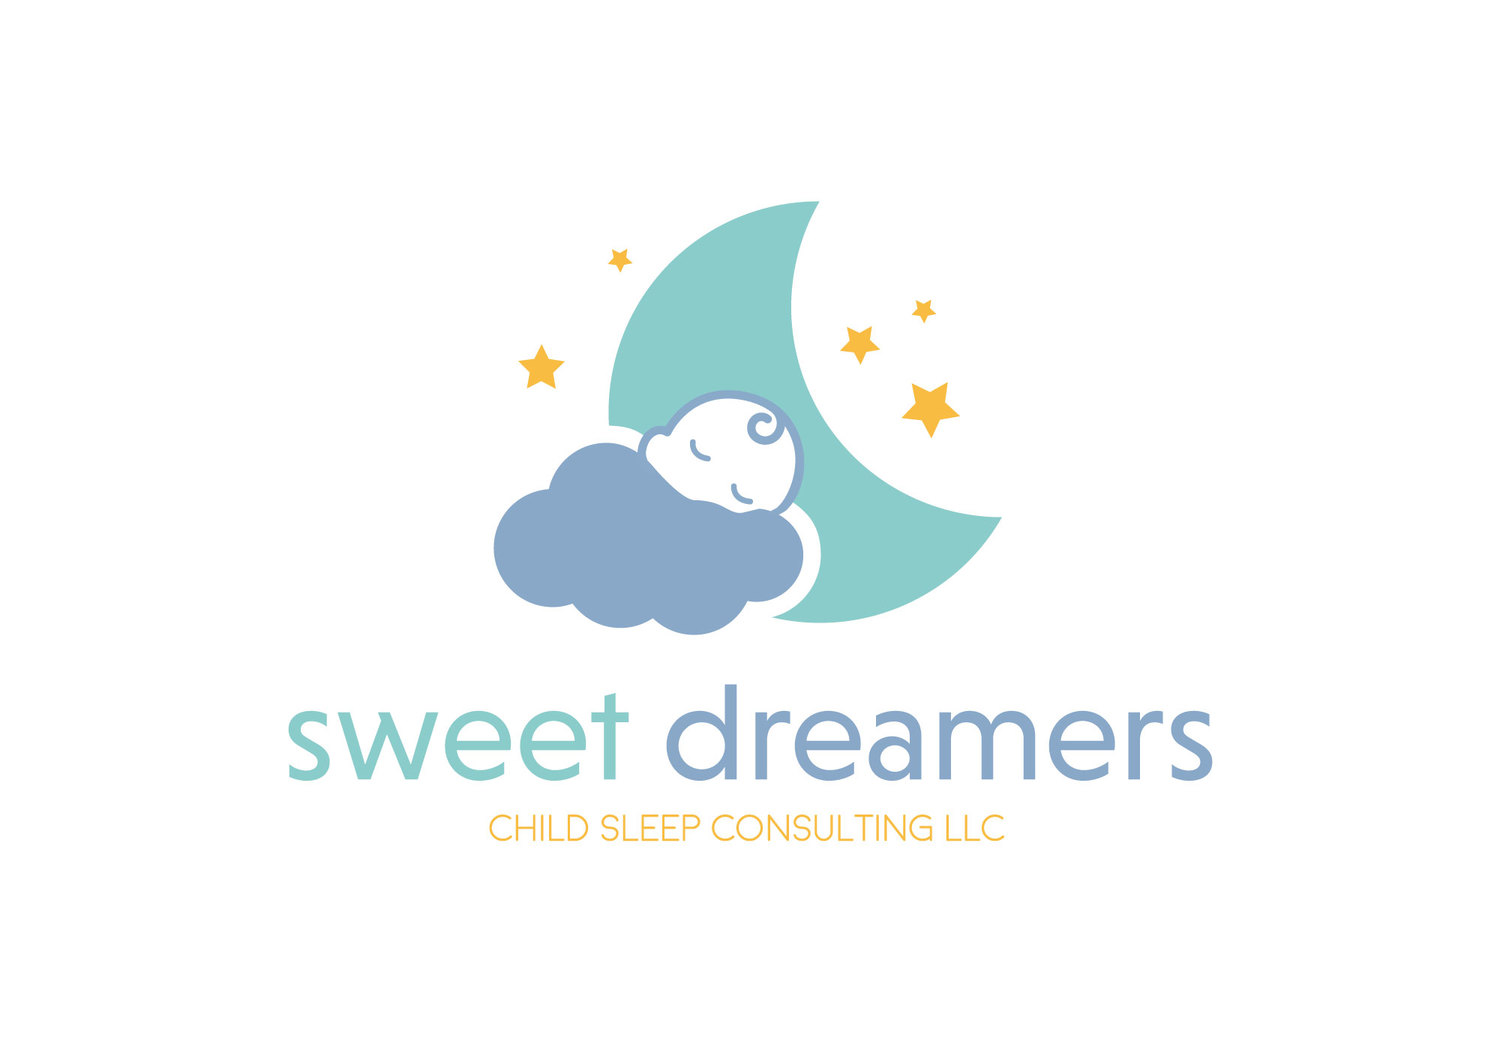 Sweet Dreamers Child Sleep Consulting LLC